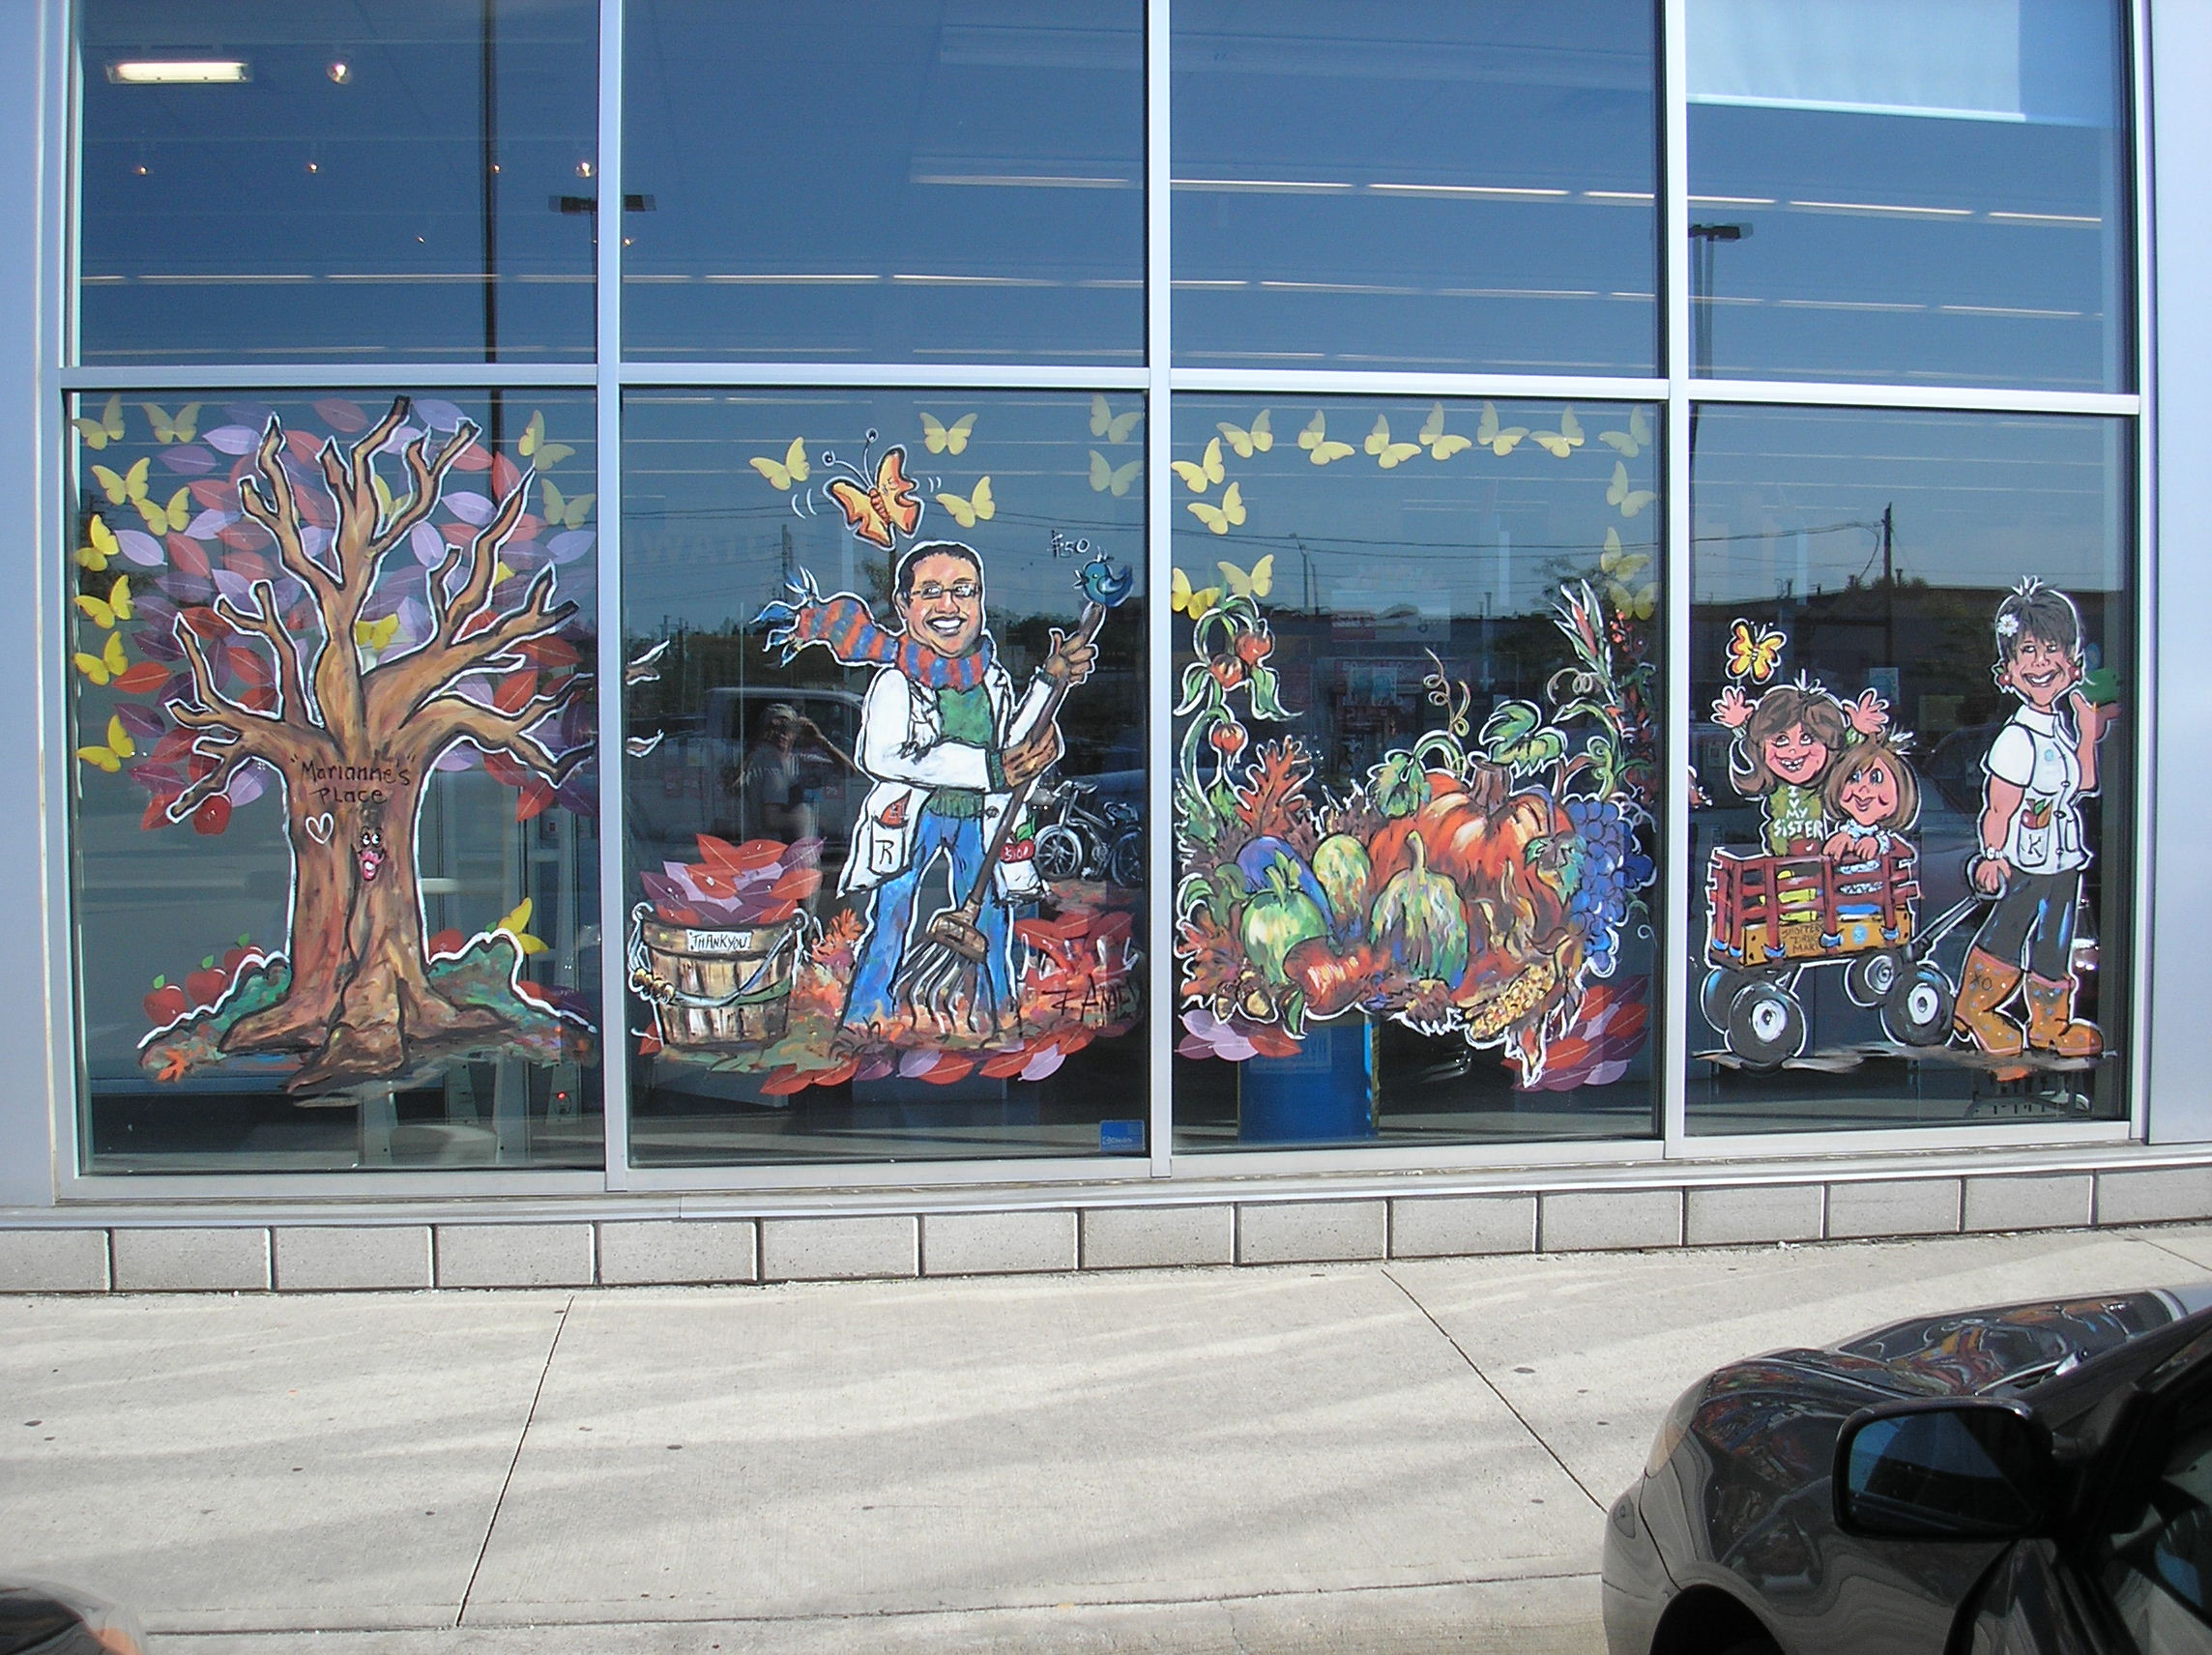 Window art work on Shopper's Drug Mart promoting a Fund raiser for Marianne's Place, (women shelter) in Guelph.